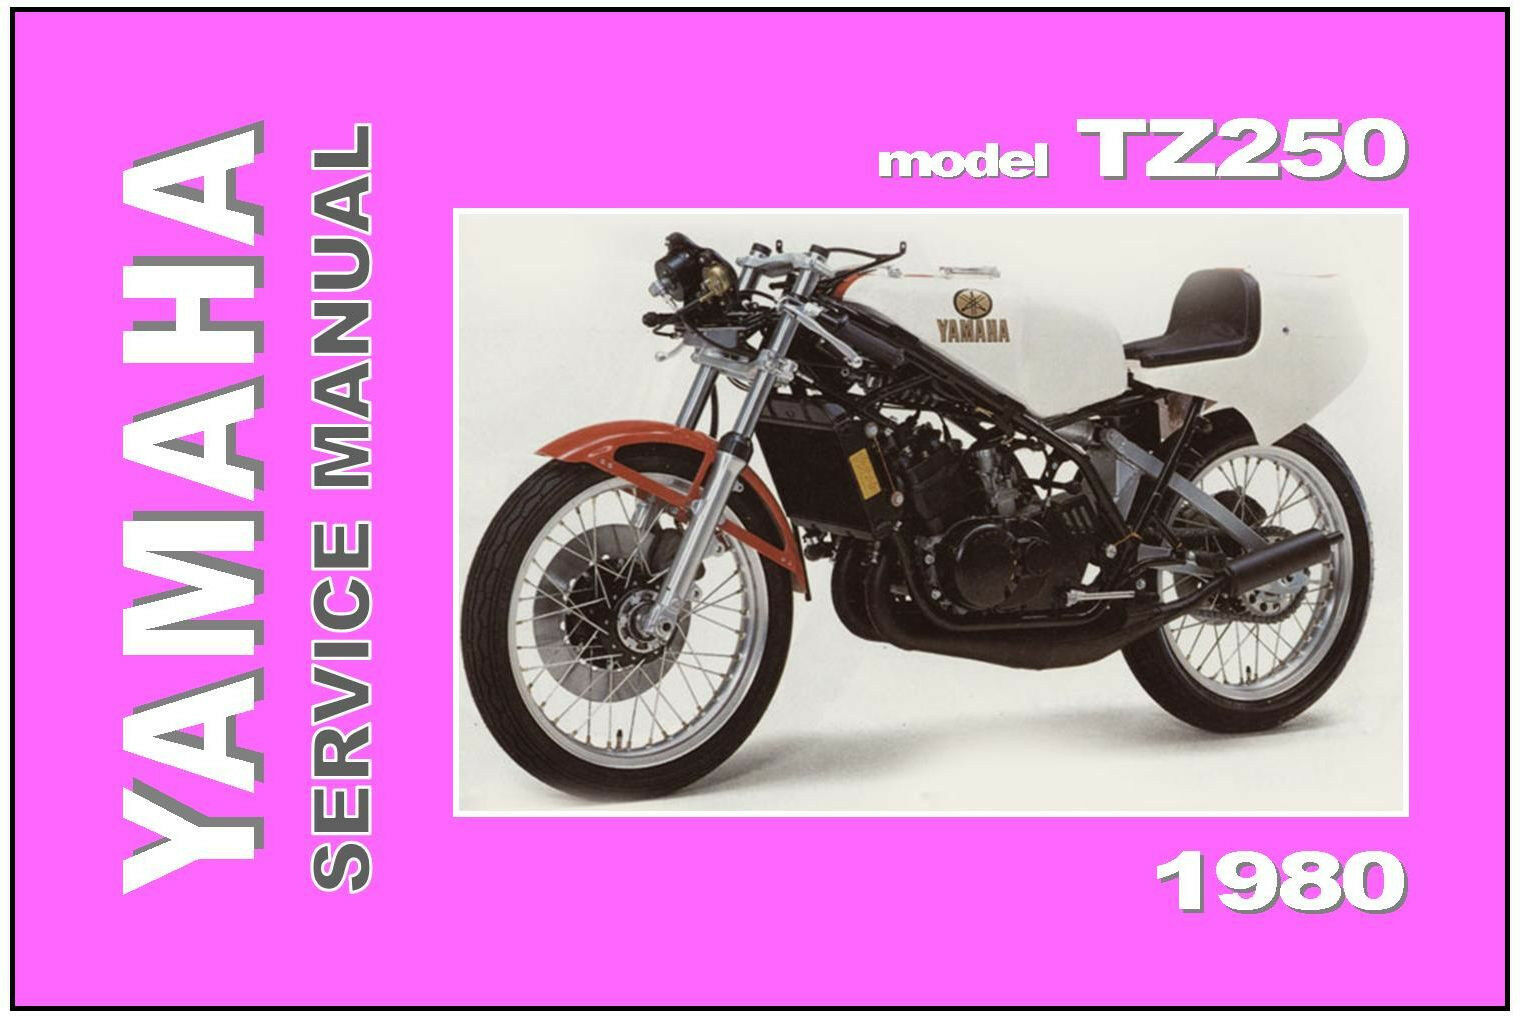 YAMAHA Workshop Manual TZ250 TZ250G 1980 Service Repair Maintenance Tuning 1  of 4Only 1 available ...